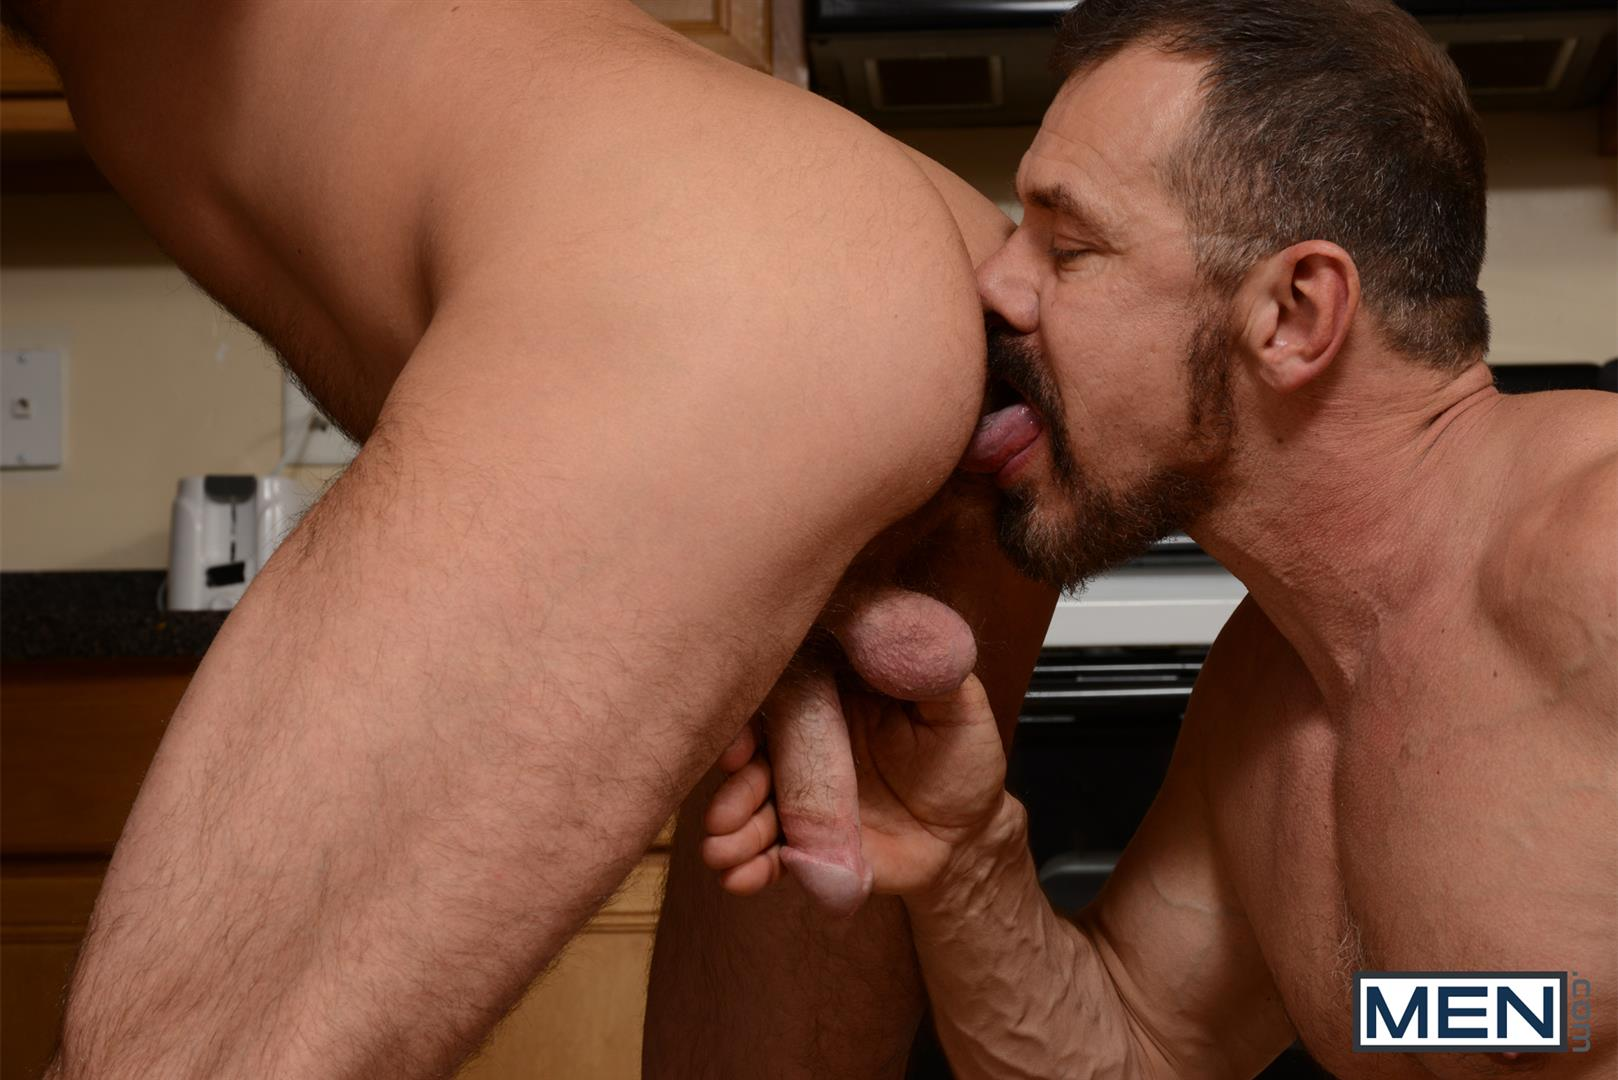 Men Drill My Hole Max Sargent and Mike Tanner Thick Cock Daddys Fucking Amateur Gay Porn 05 Hairy Muscle Daddys Fucking In The Kitchen And Eating Cum